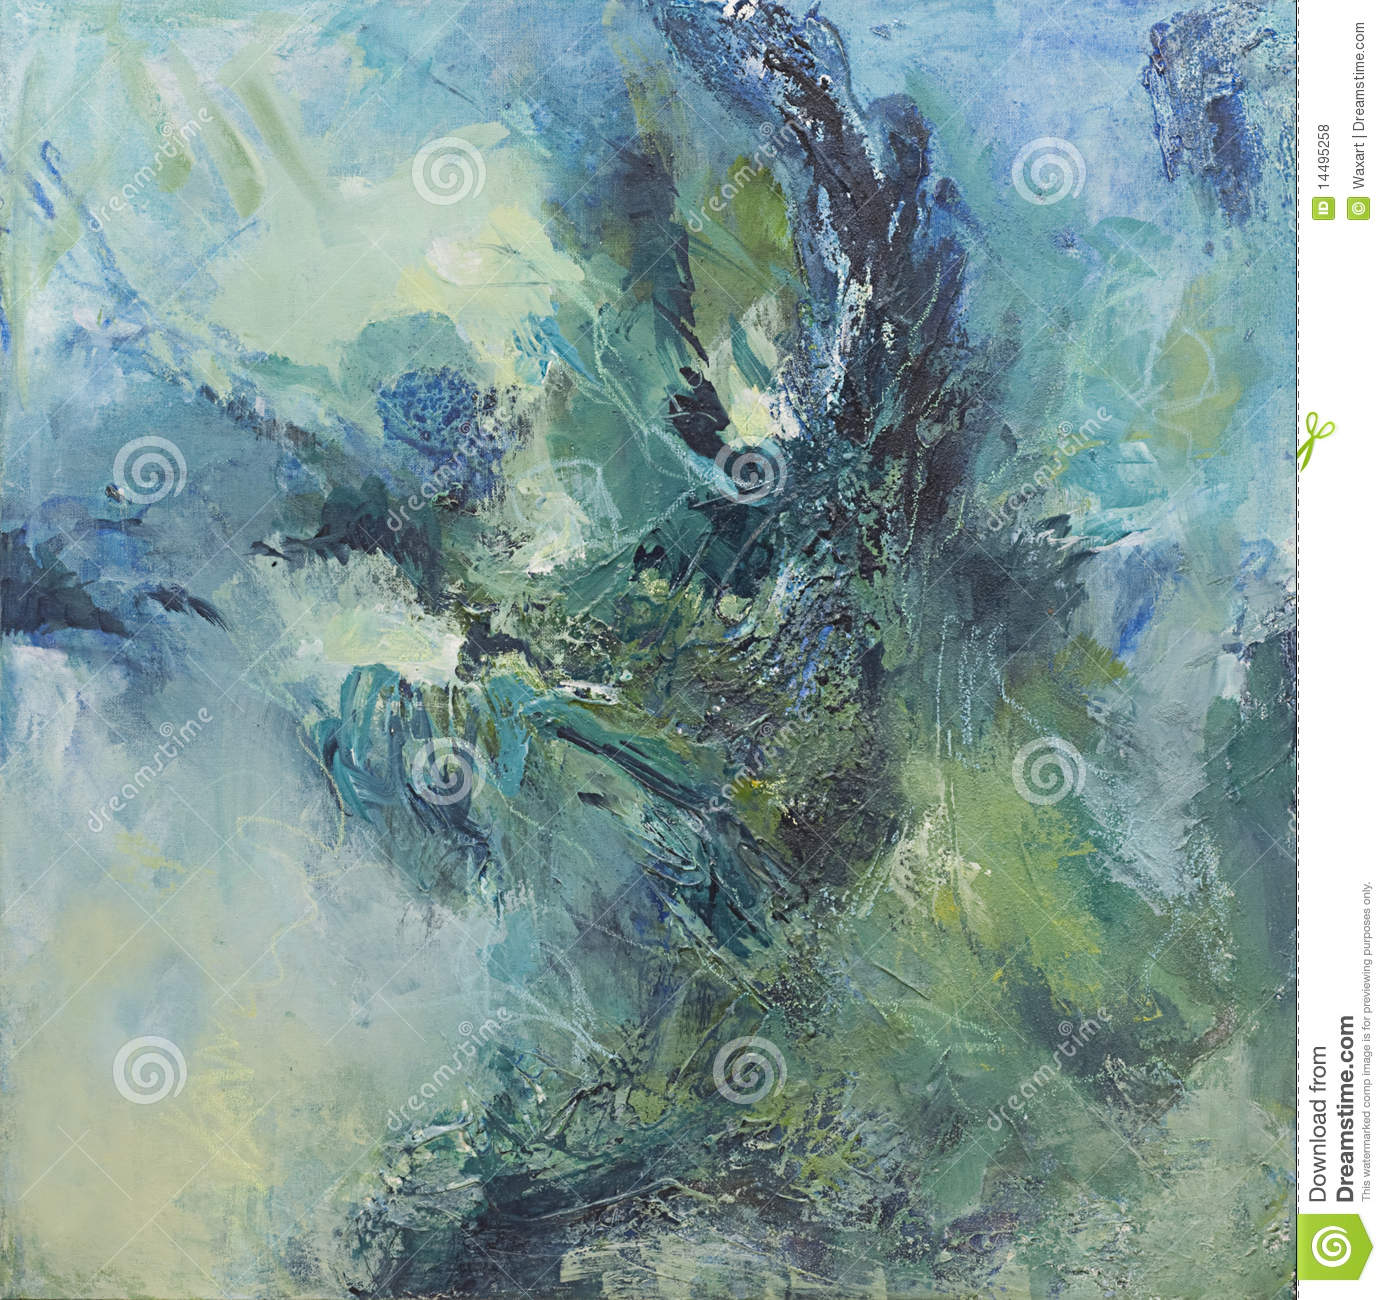 Green and blue abstract expressionist painting